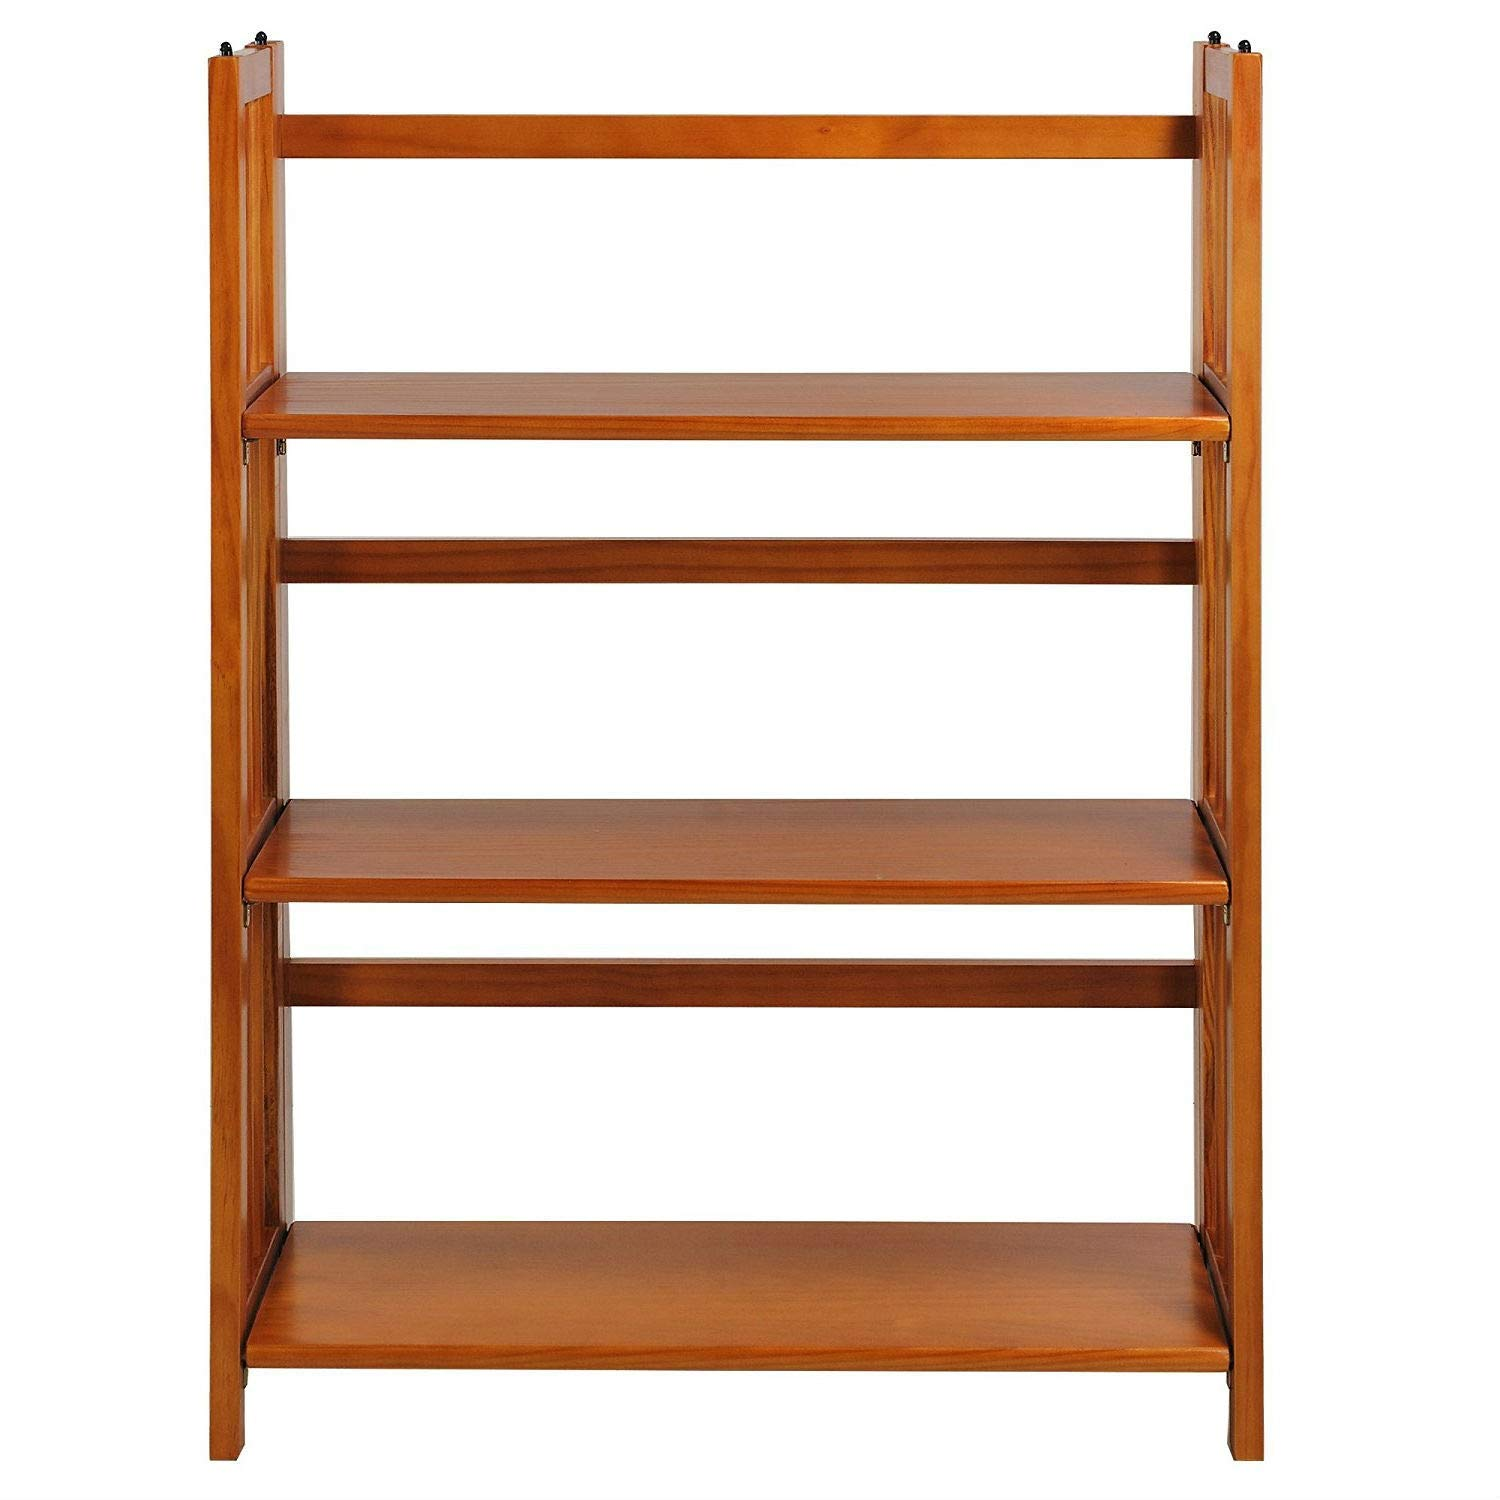 Trustpurchase 3-Shelf Folding Storage Shelves Bookcase in Honey Oak Finish, has A Classic Styling and There is No Assembly Required, A Great Addition to Your Home